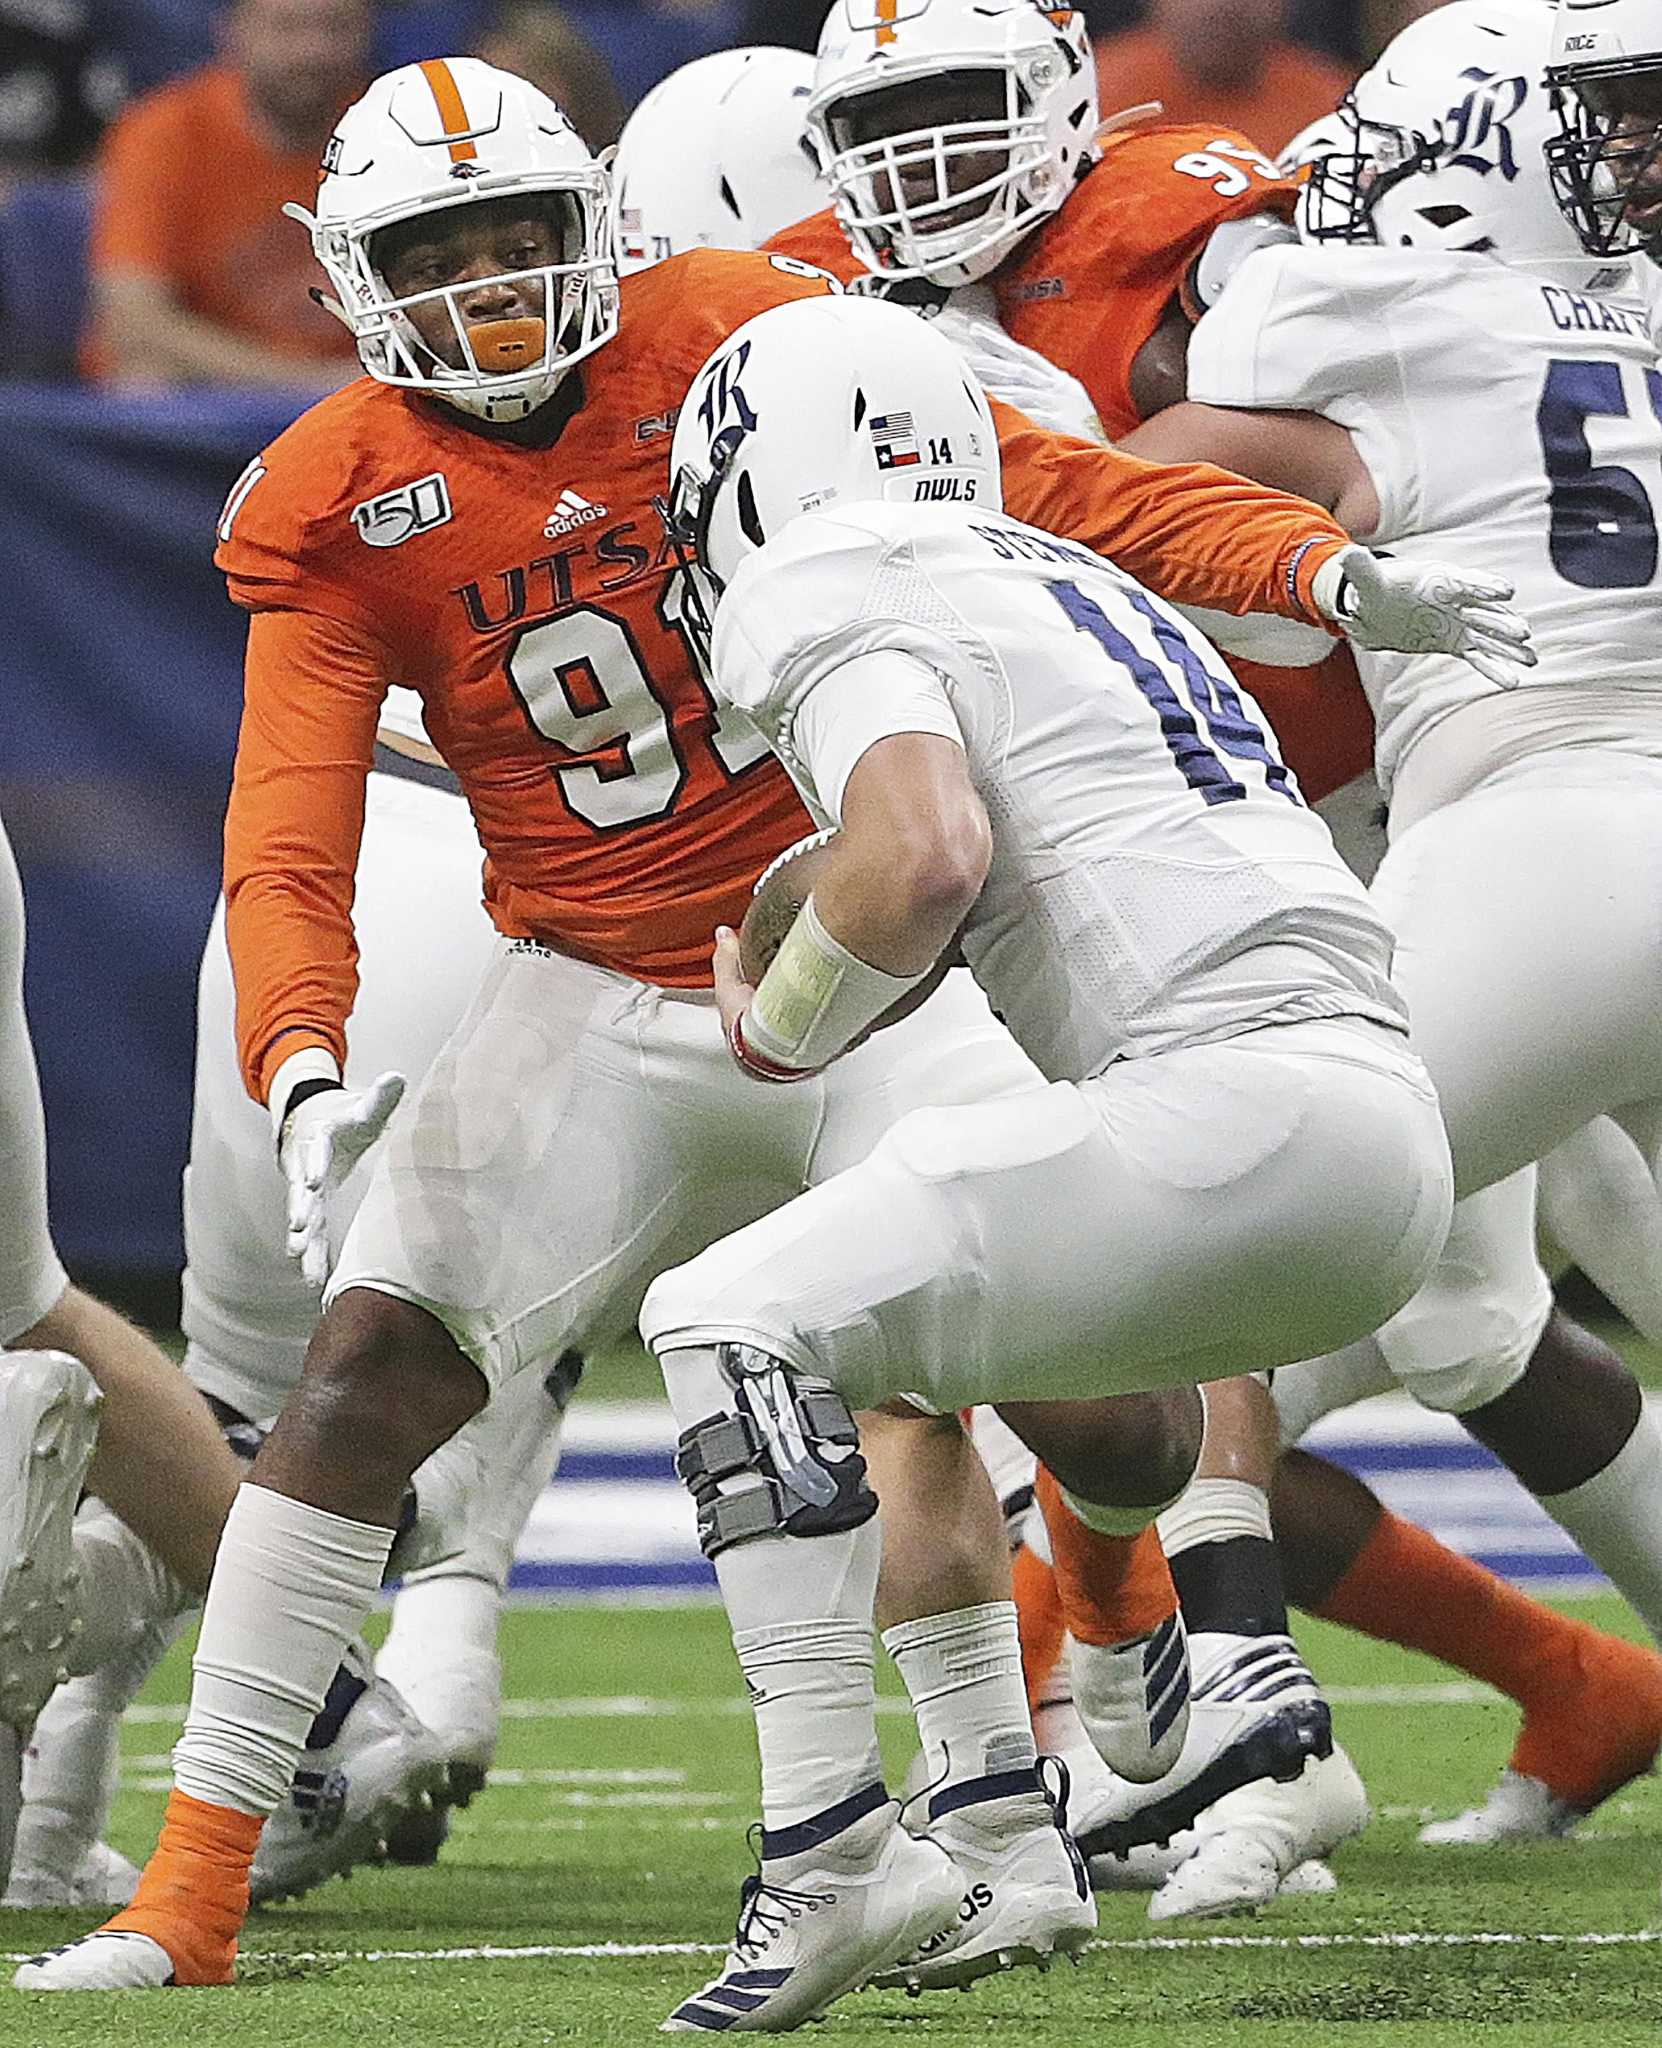 Narcisse leads UTSA to win against Rice